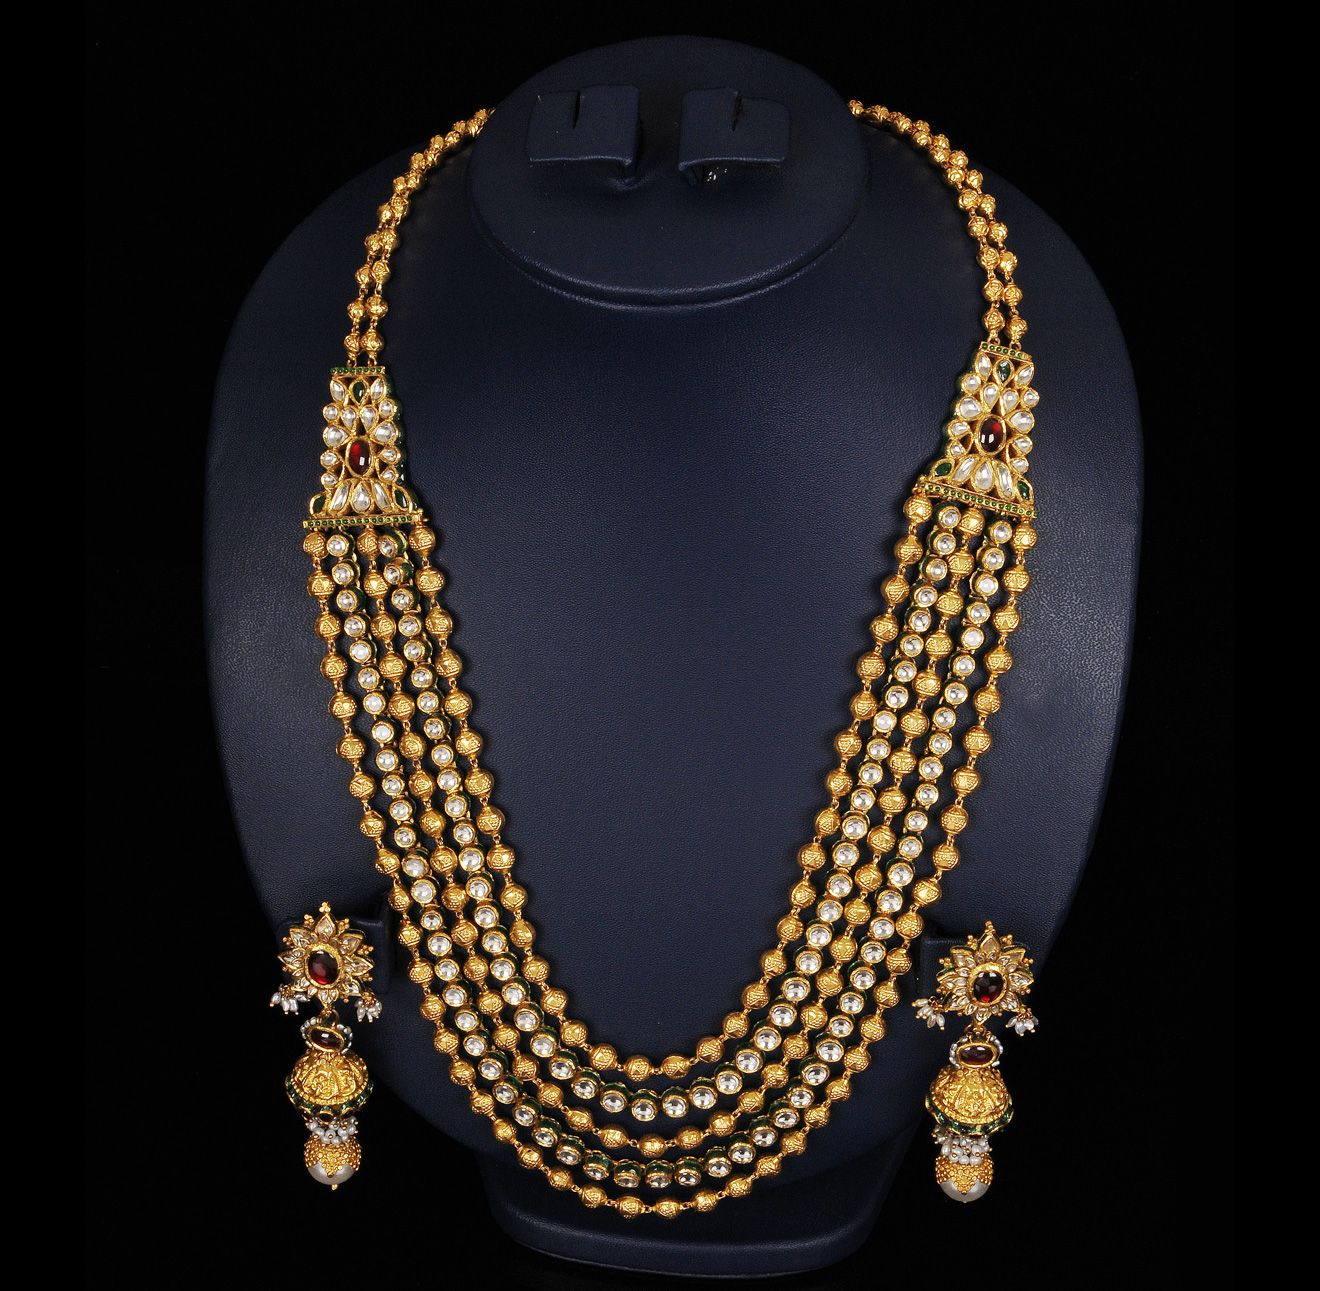 Top 25 Indian Antique Jewellery Designs For Women: Antique Beads Kundan Mala